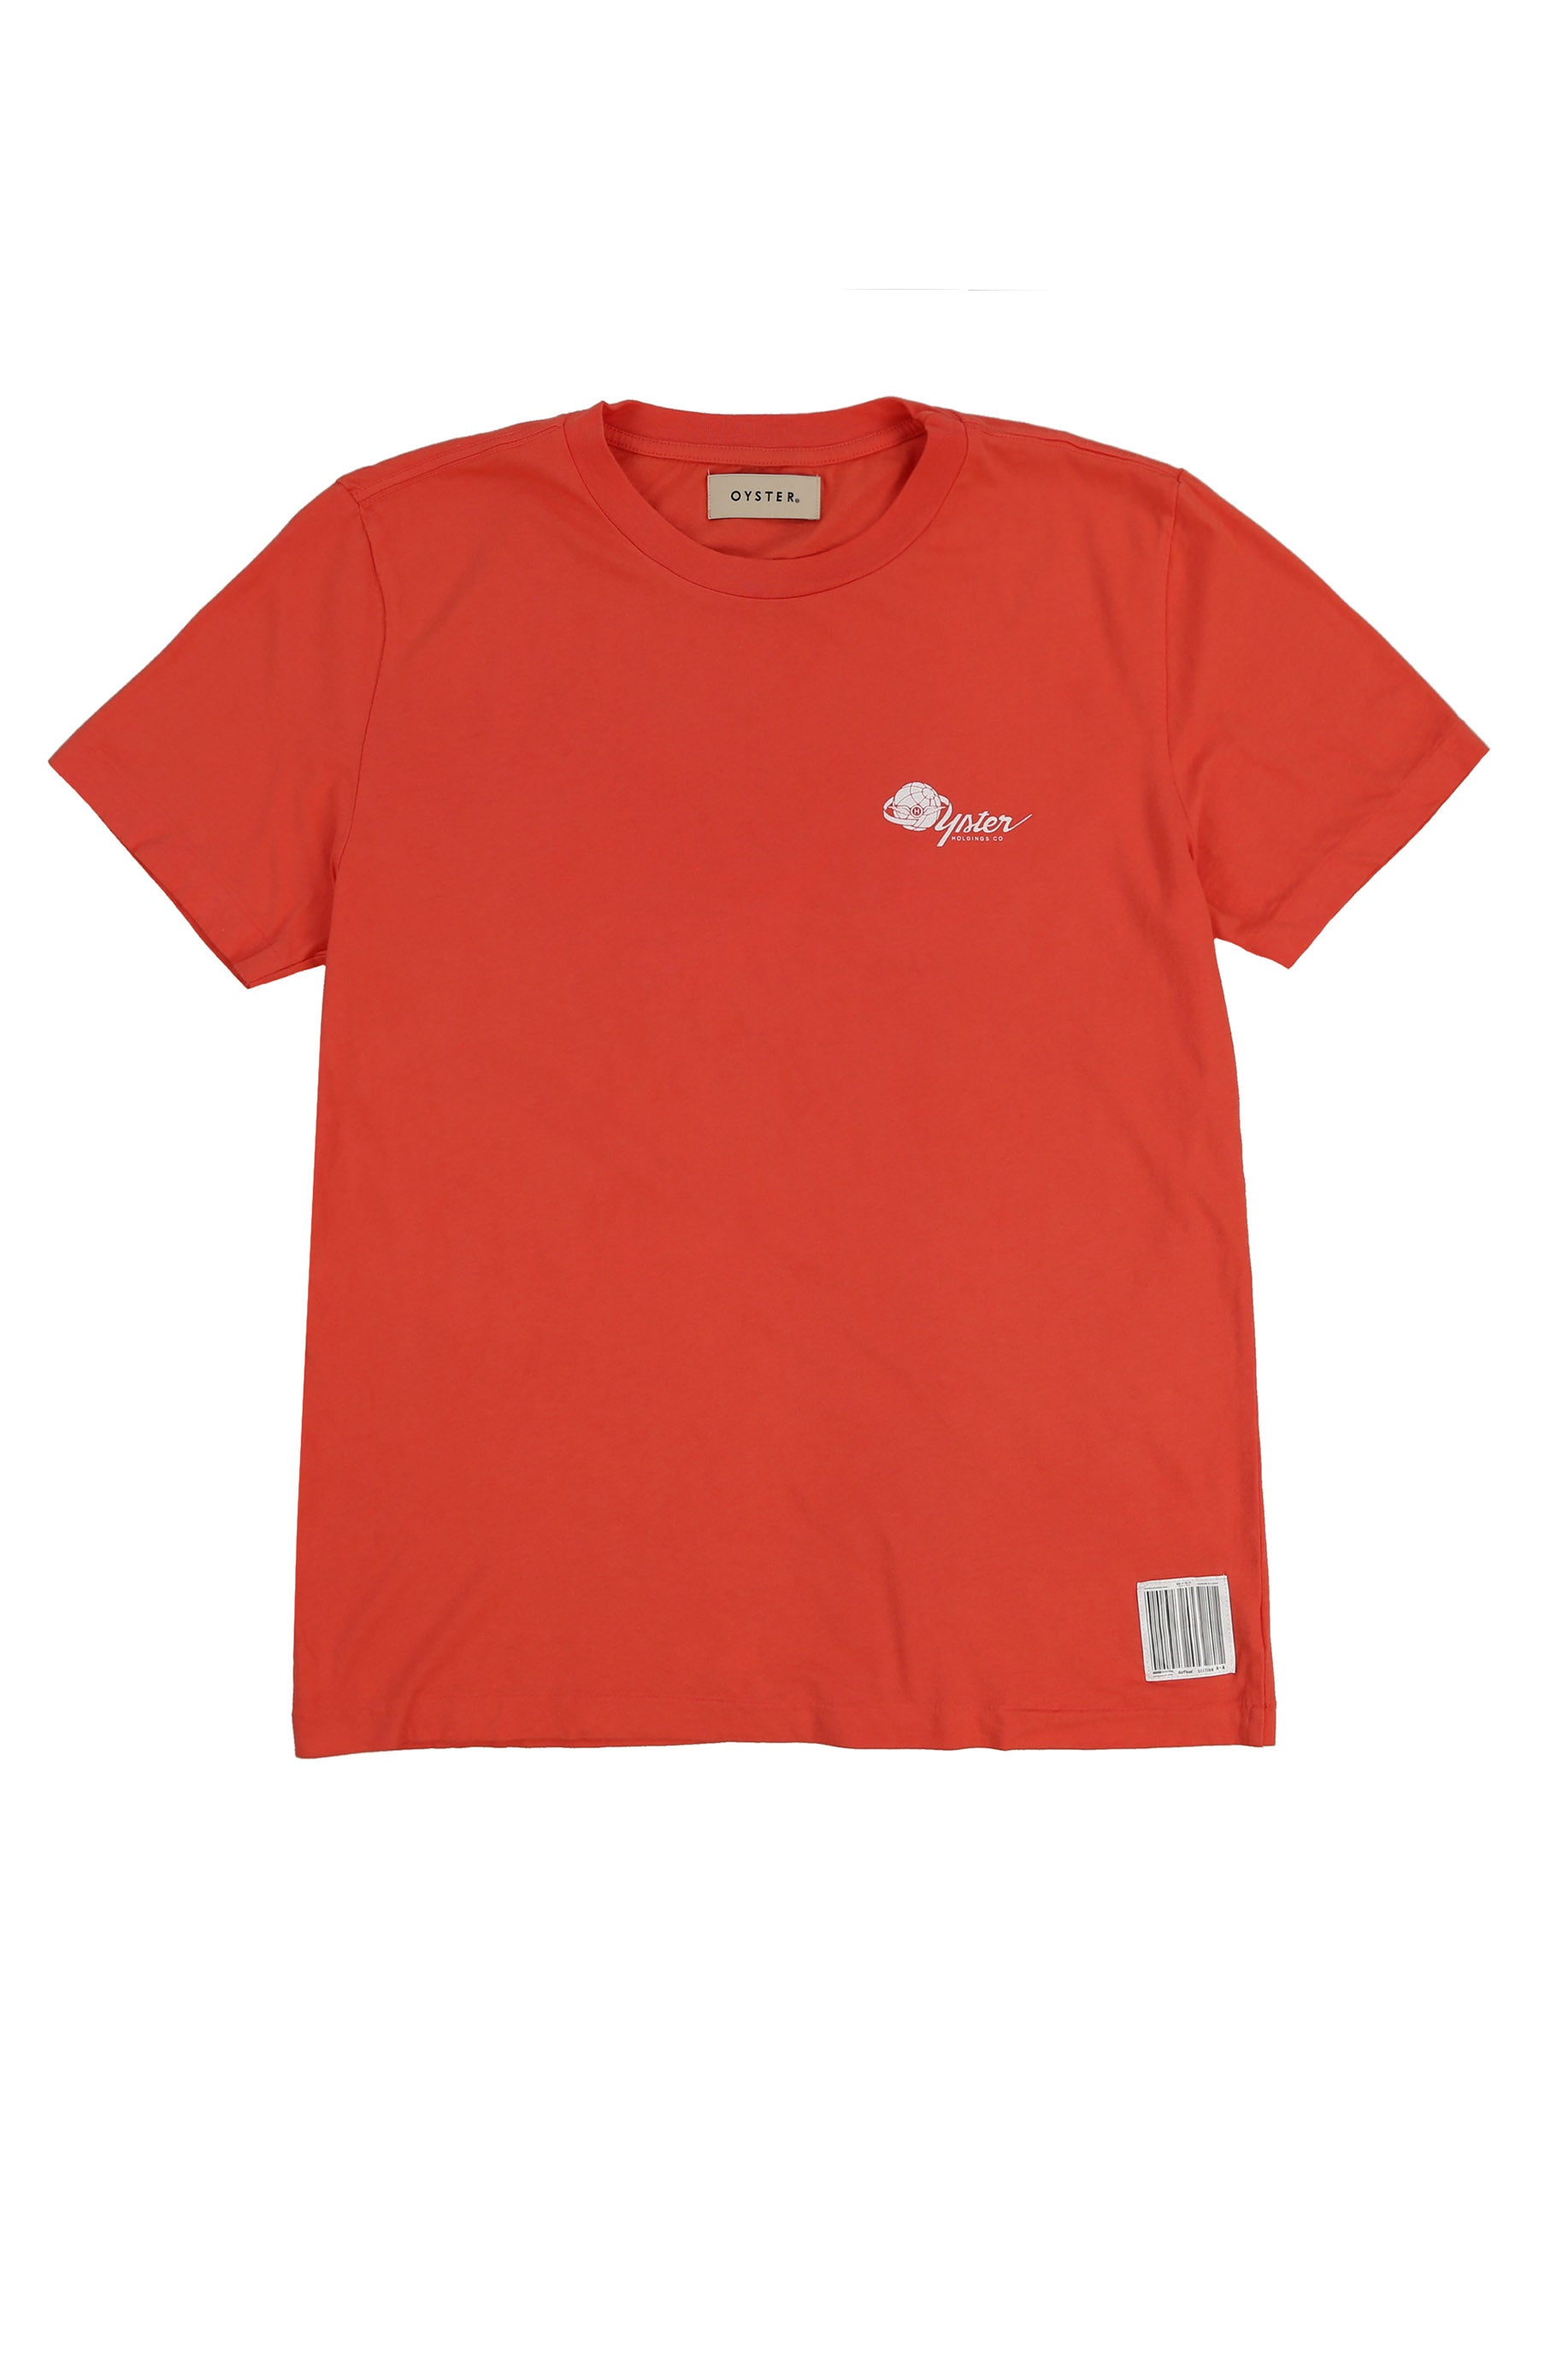 OYSTER AIRLINES SAINT TROPEZ TEE (WATERMELON)